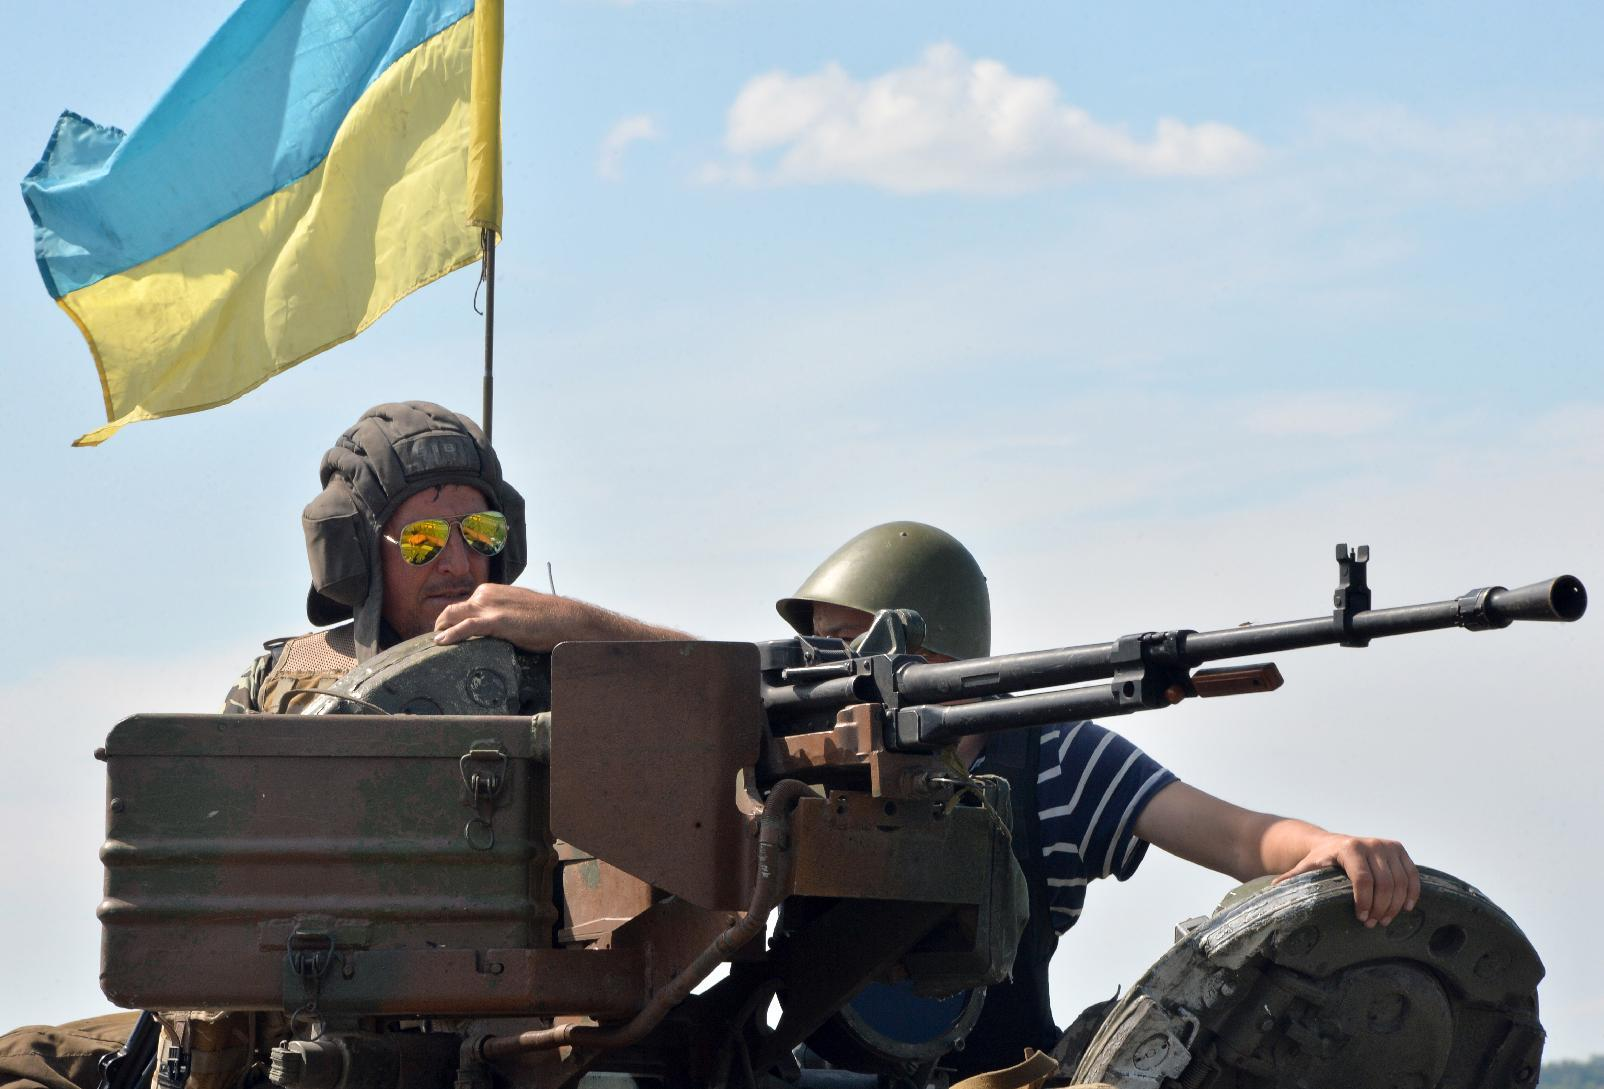 Ukrainian soldiers man their positions on a tank at a check-point near the small eastern city of Konstantinovka, some 50 km from Donetsk, on July 10, 2014 (AFP Photo/Genya Savilov)